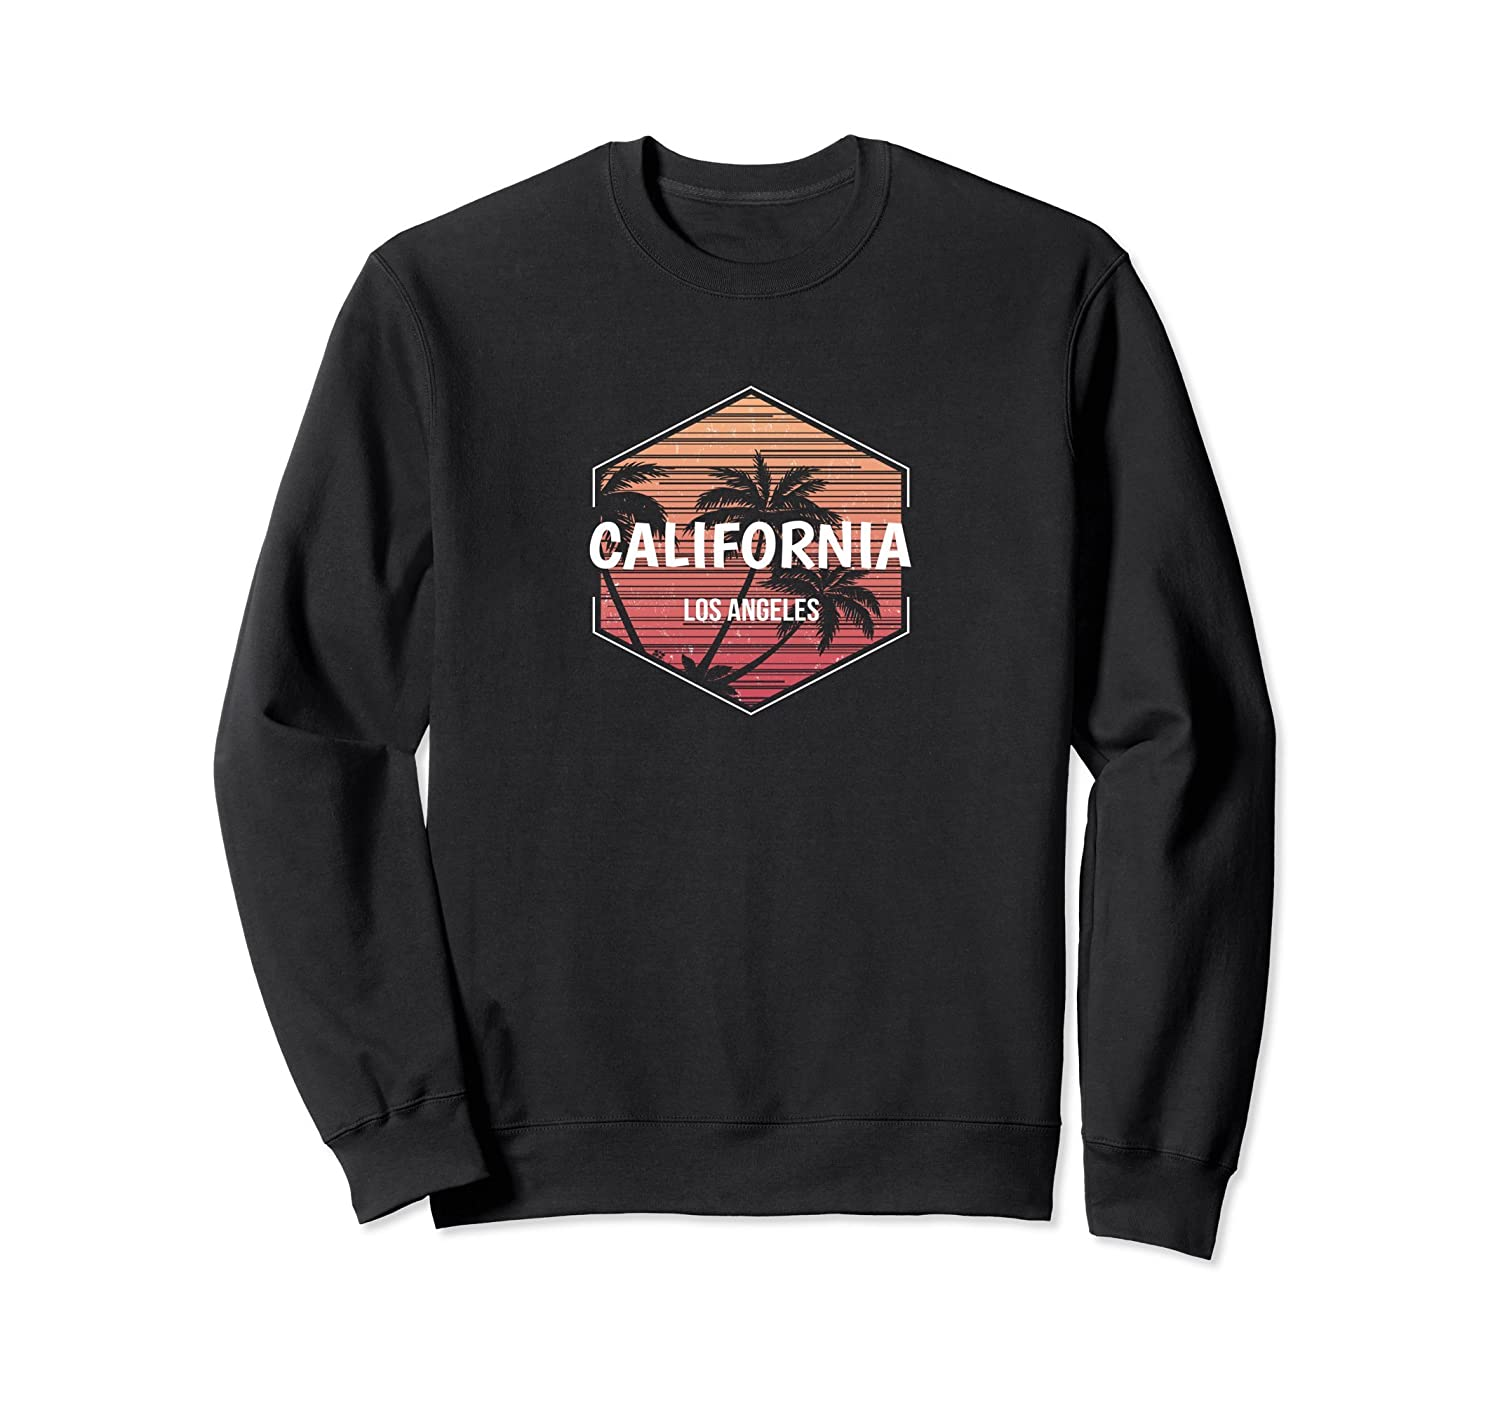 Los Angeles Vacation Sweatshirt Family Retro Apparel-fa